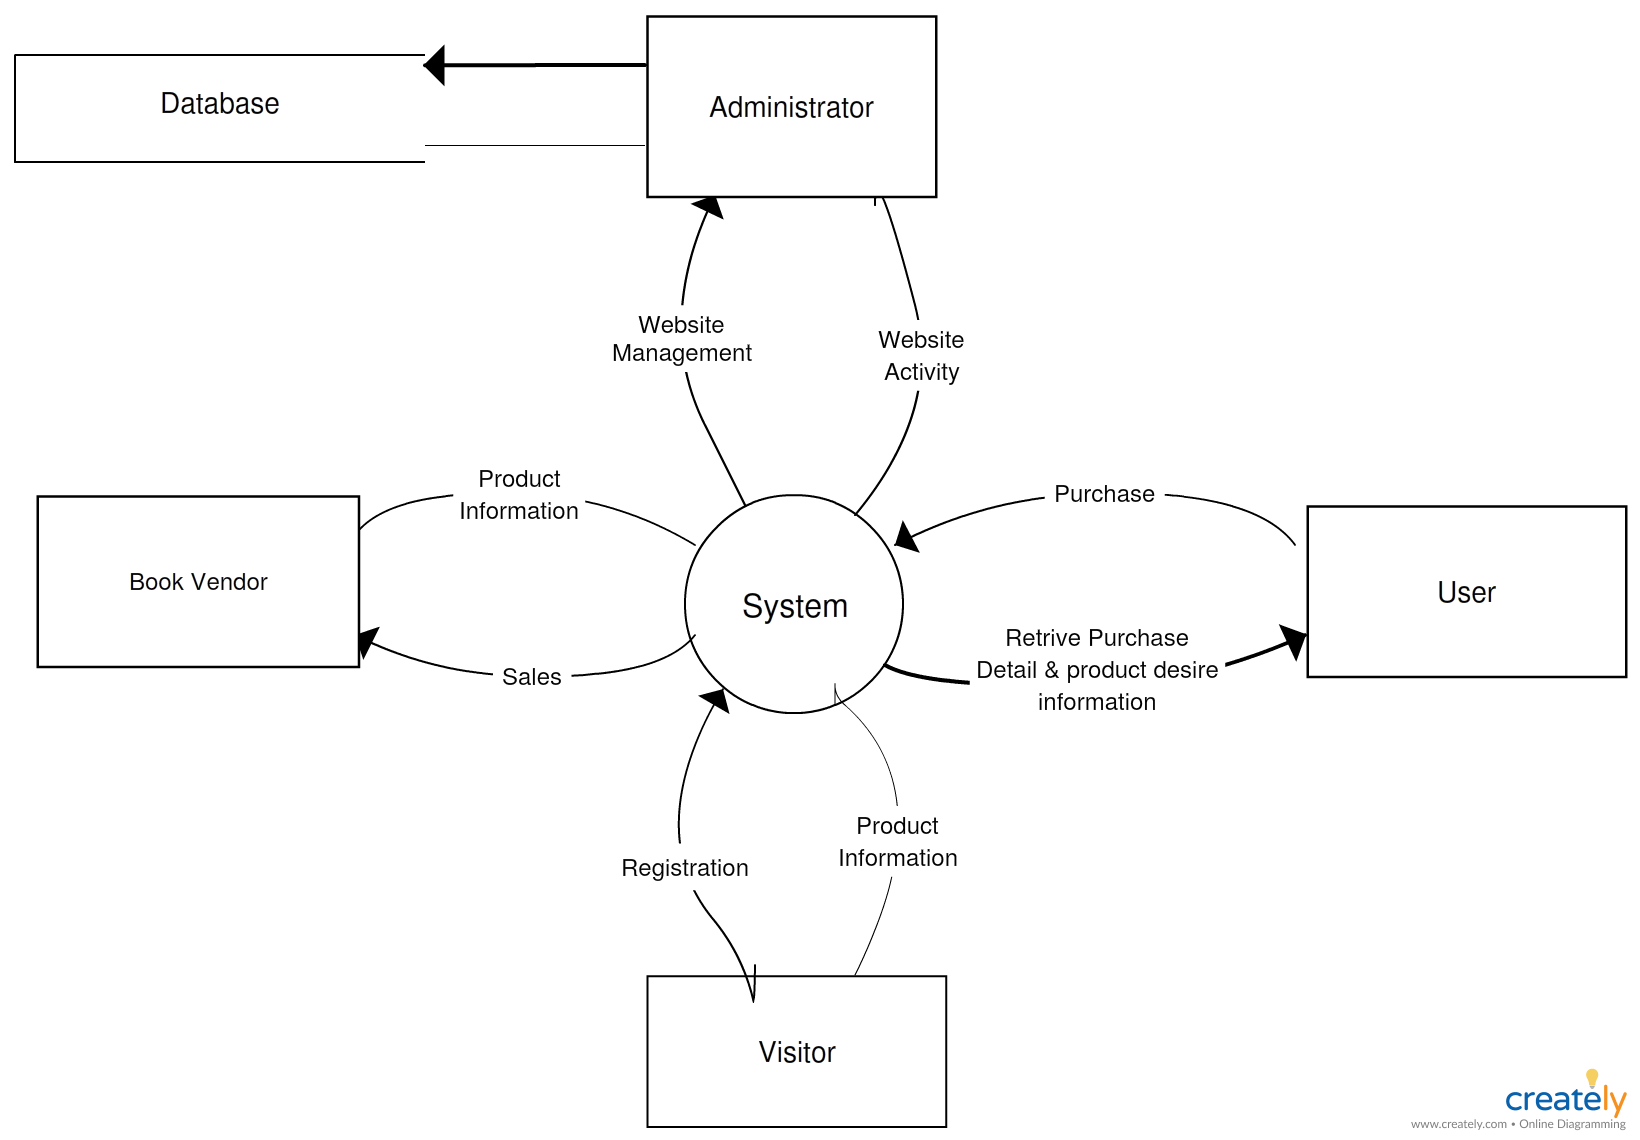 a level 0 data flow diagram dfd shows a data system as a whole and emphasizes the way it interacts with external entities this dfd level 0 example shows  [ 1640 x 1140 Pixel ]